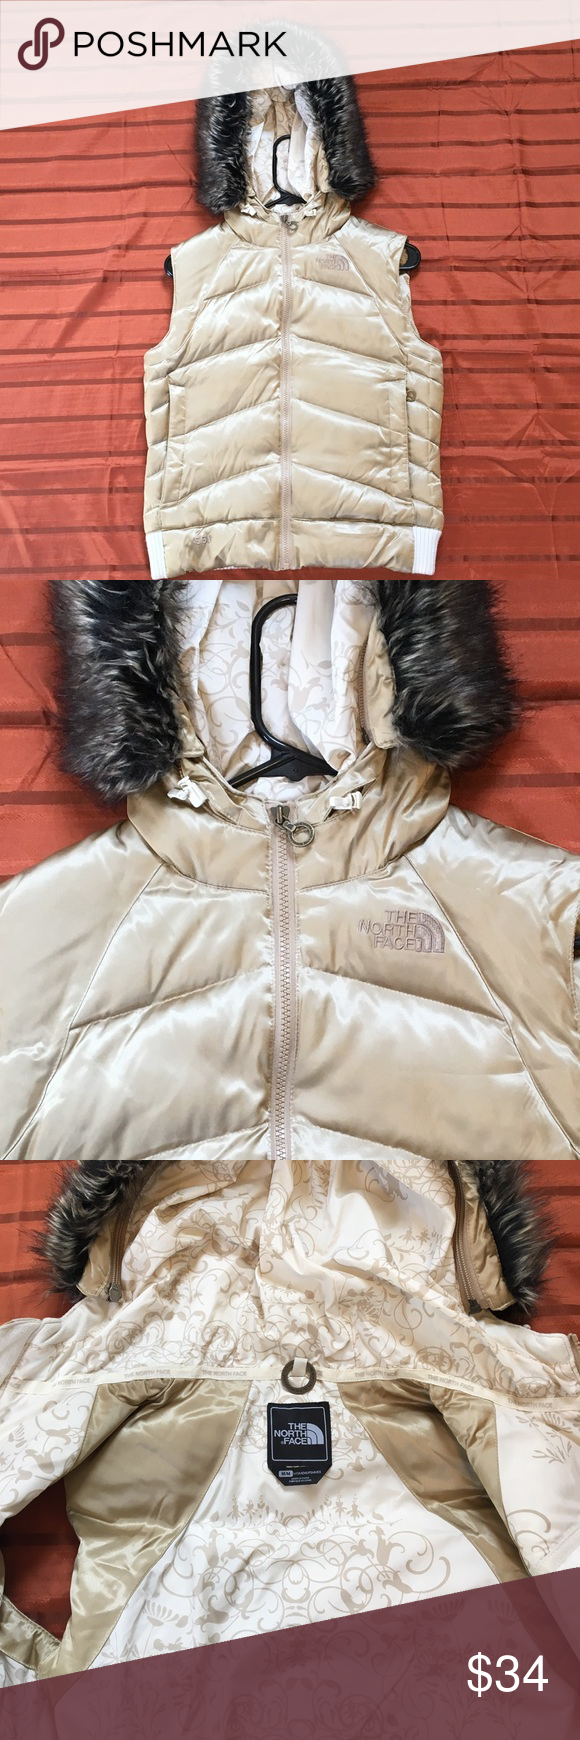 The North Face gold puffer vest jacket with hood Fashion